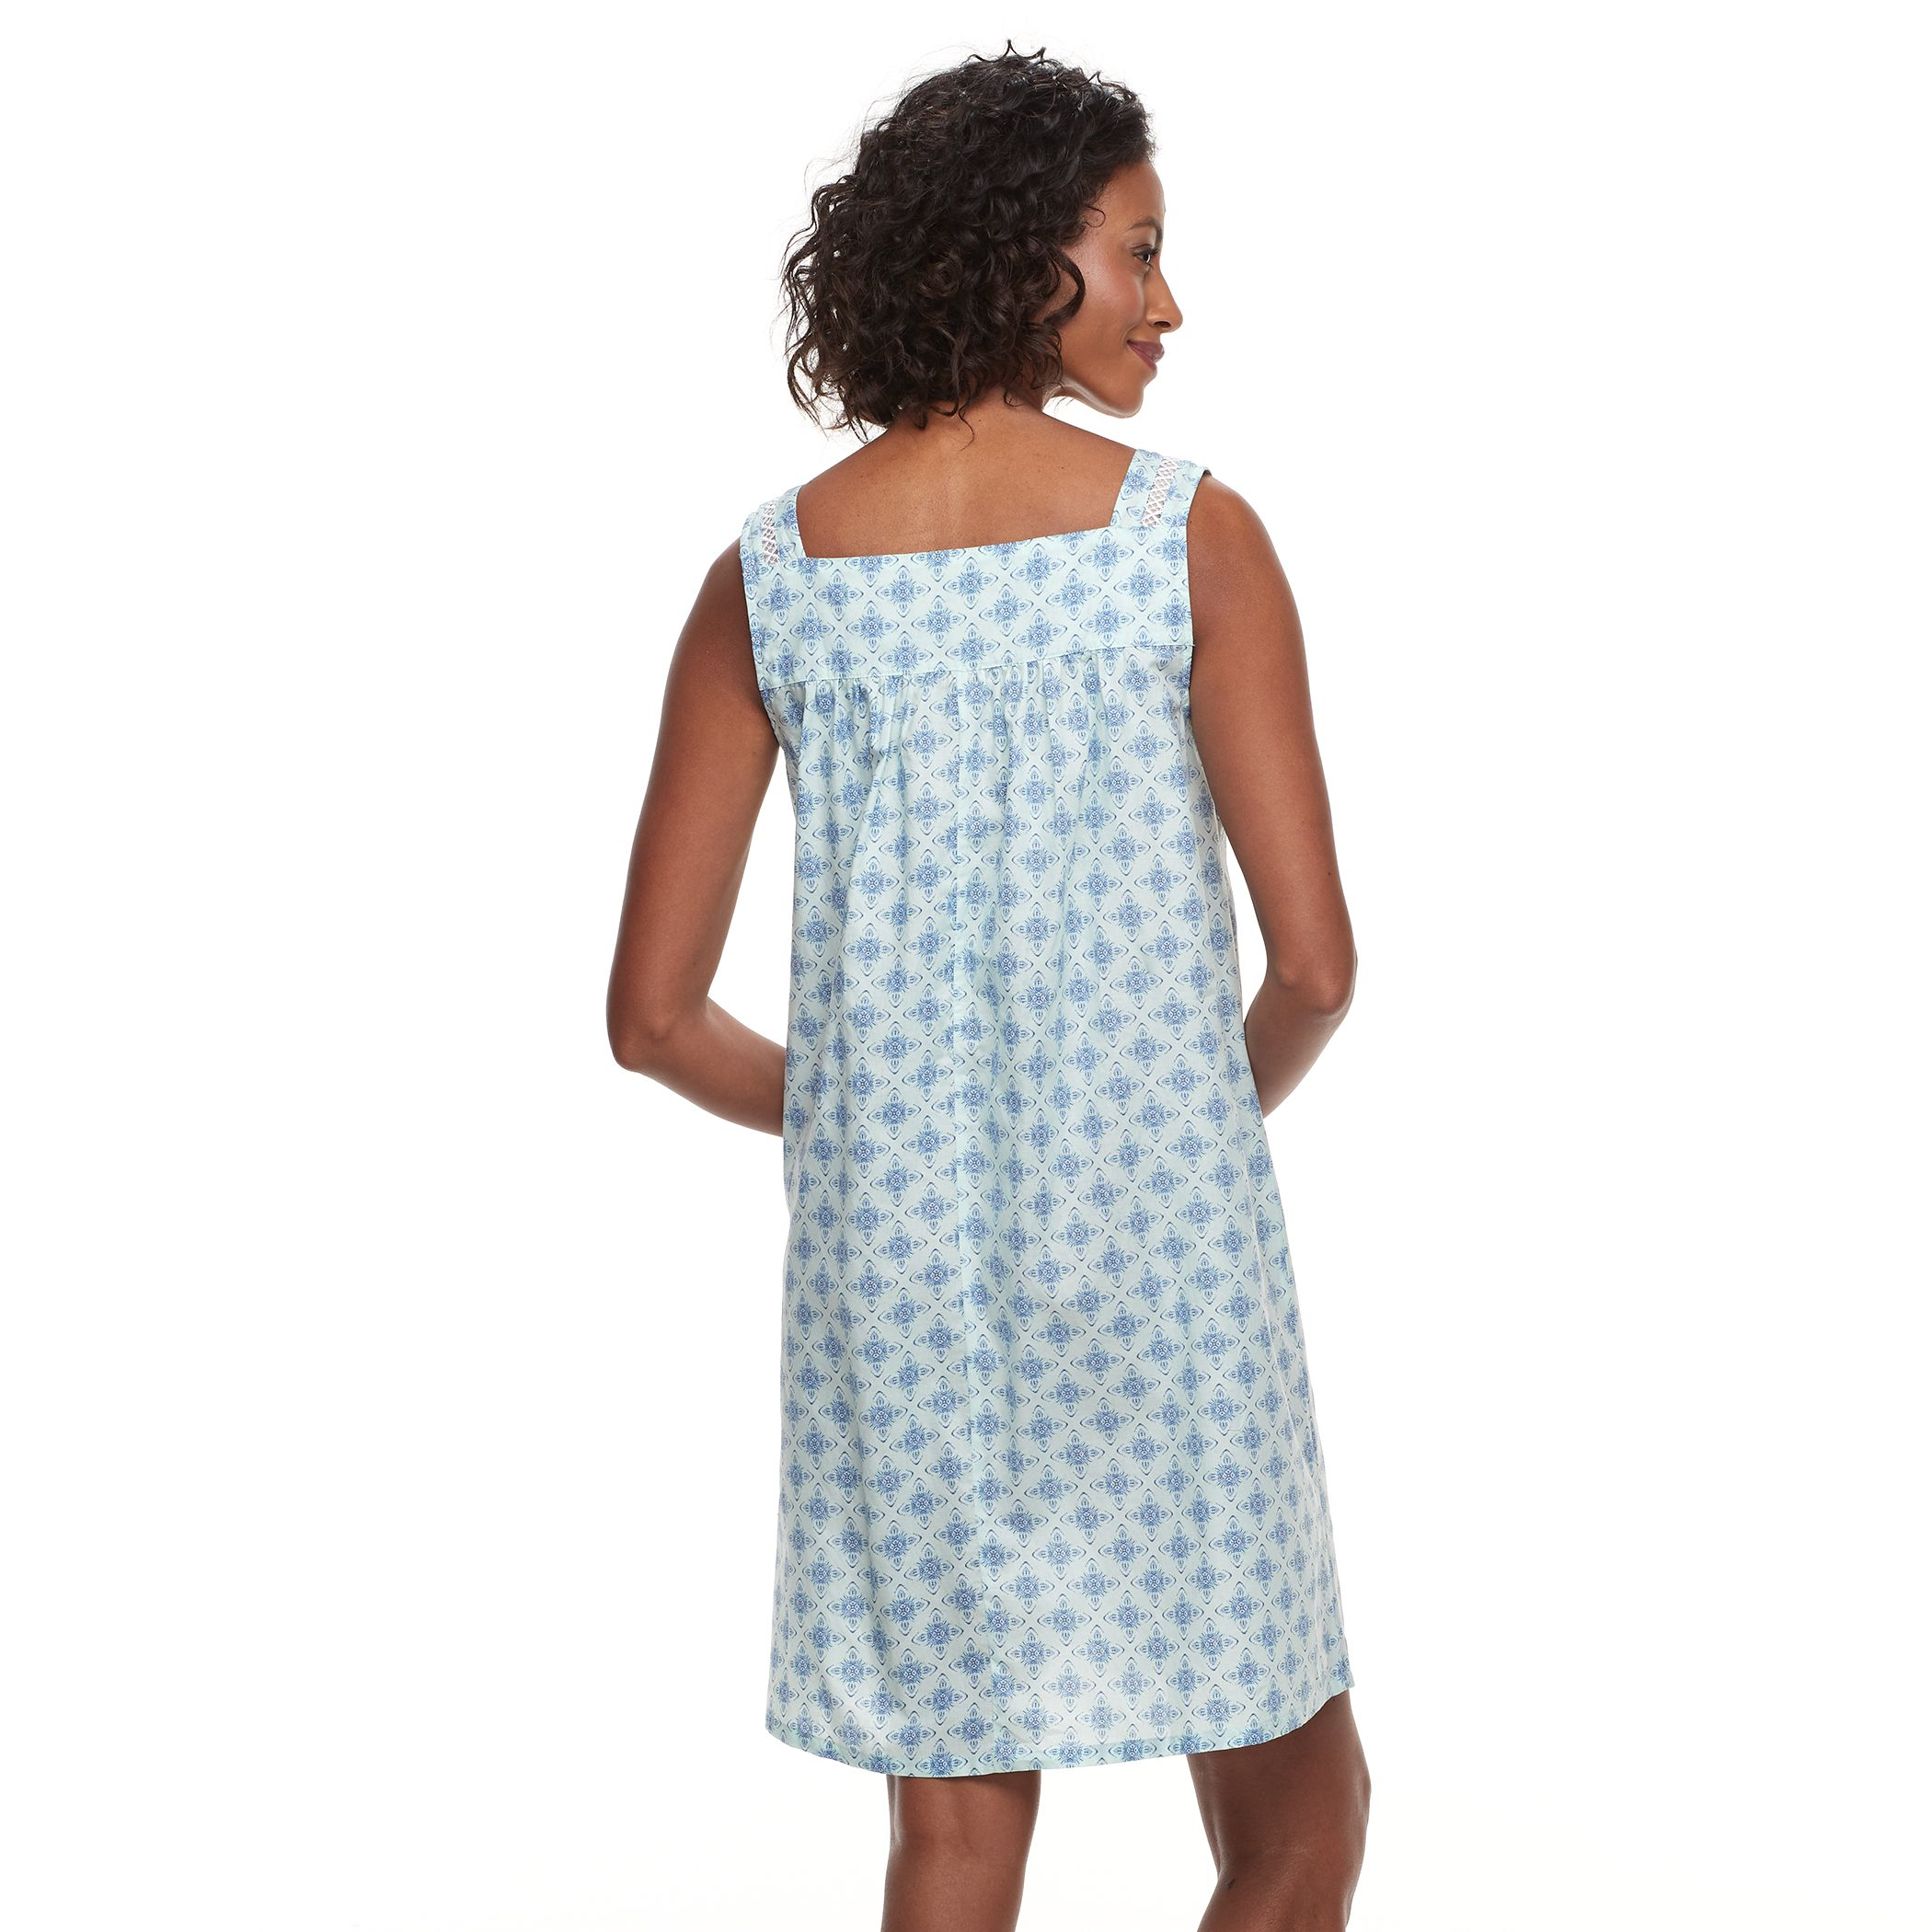 Cotton Gowns - Sleepwear, Clothing | Kohl\'s